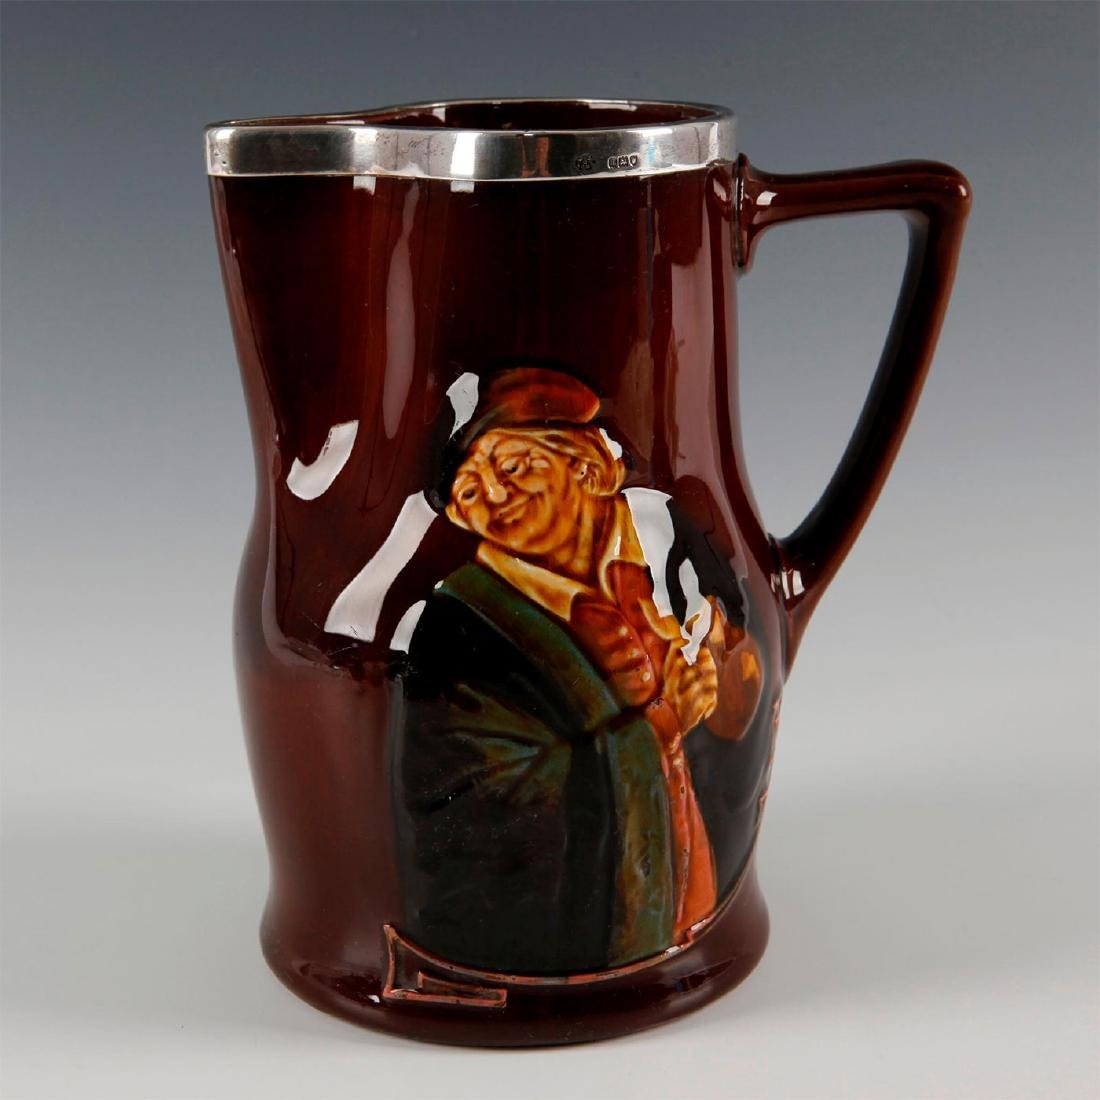 ROYAL DOULTON KINGSWARE JUG HOGARTH WITH TANKARD